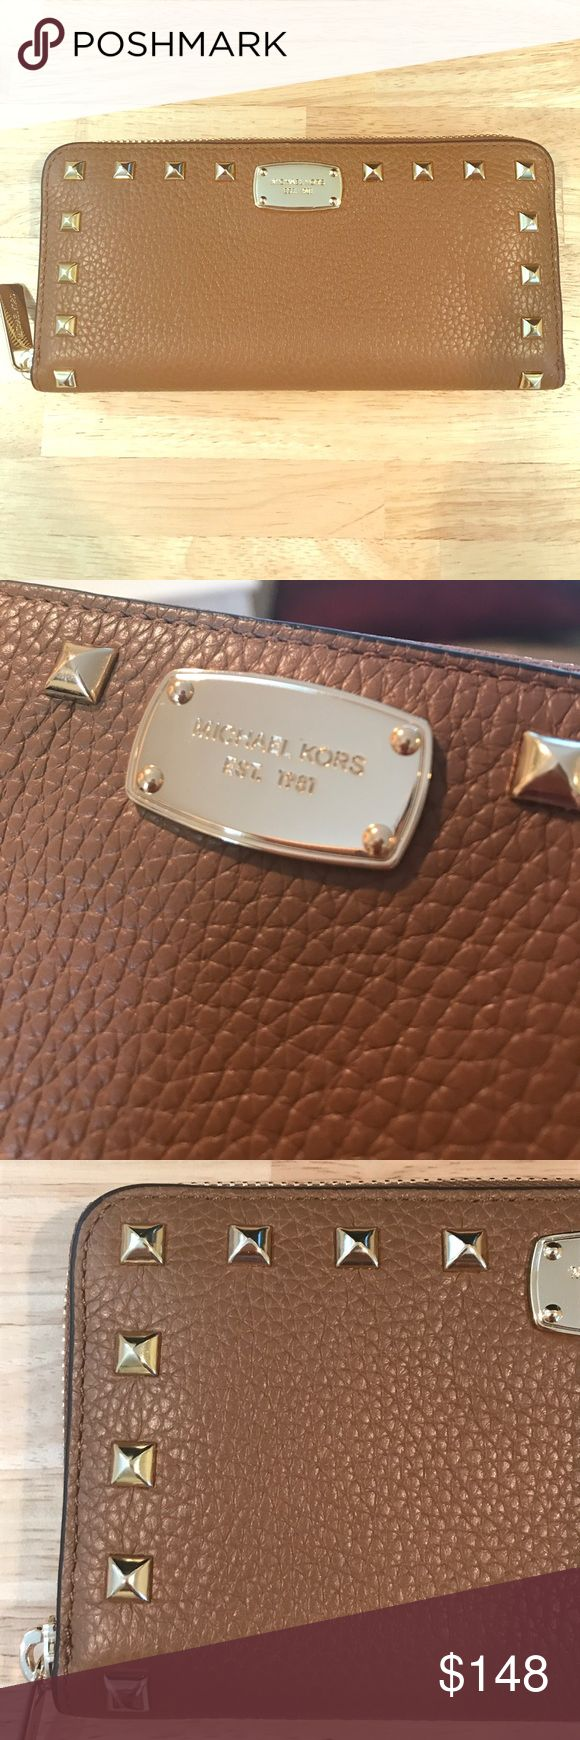 Michael Kors Tan Leather Studded Wallet NWT This Michael Kors wallet is deep tan Leather with gold studs on the perimeter of the front and back. Part of his Jet Set collection and timeless. Inside there are 8 credit card slots, a zippered change purse and 2 cash slots. Gold zipper closure. Retail is $198 Michael Kors Bags Wallets